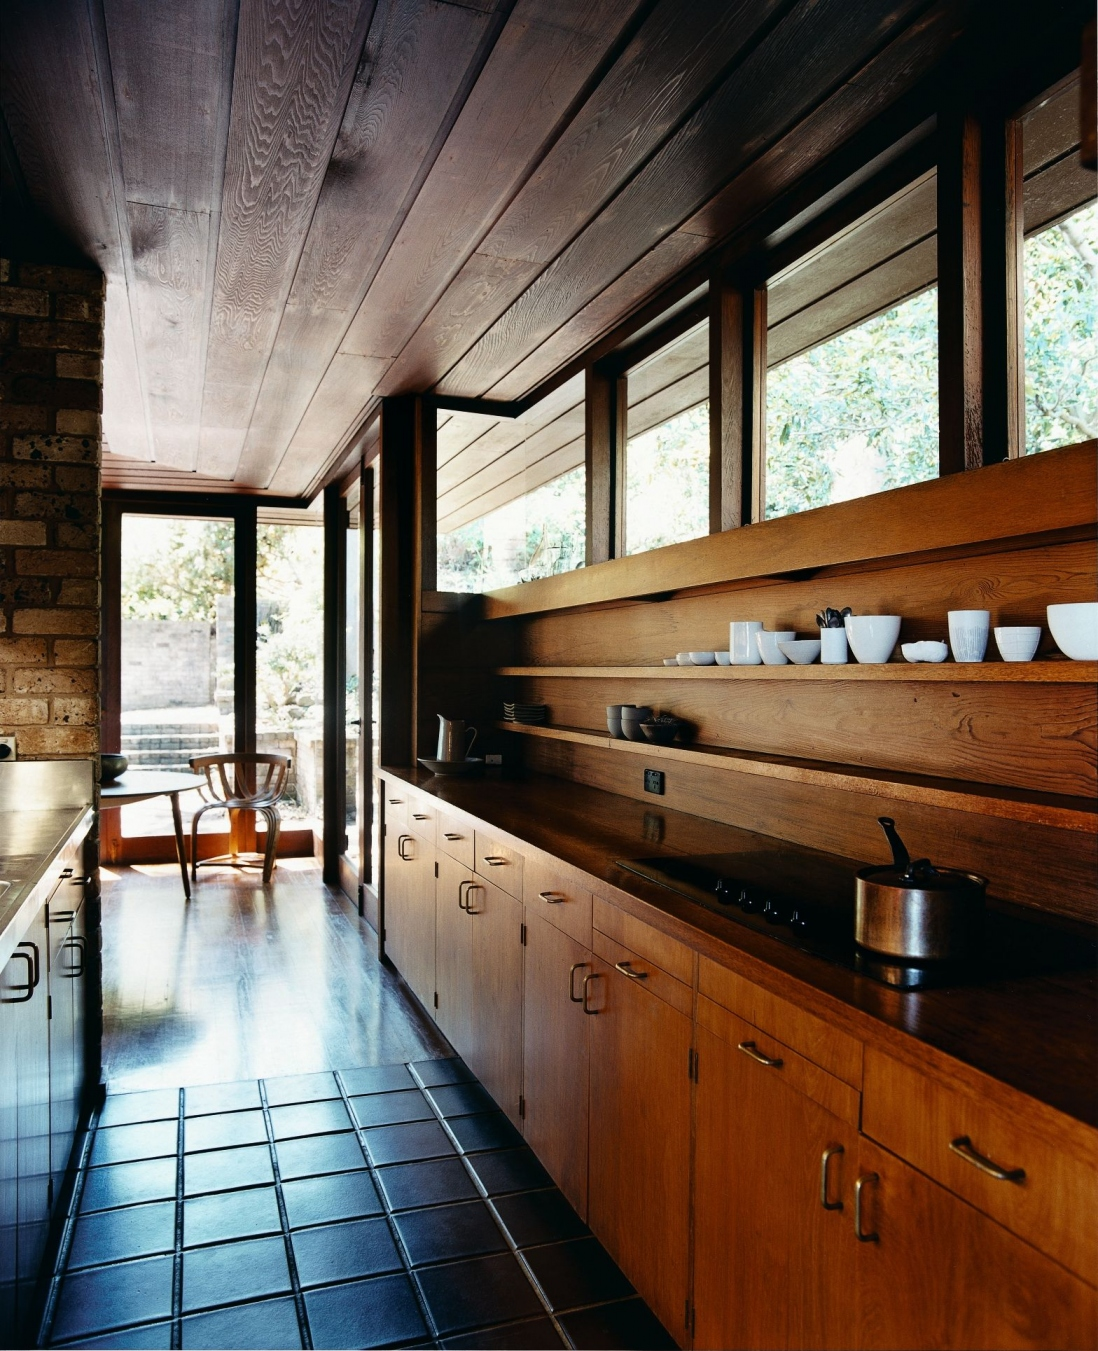 This is a photograph of a gallery style kitchen with a tiled floor. Timber is used for the ceiling, cupboards and benches.